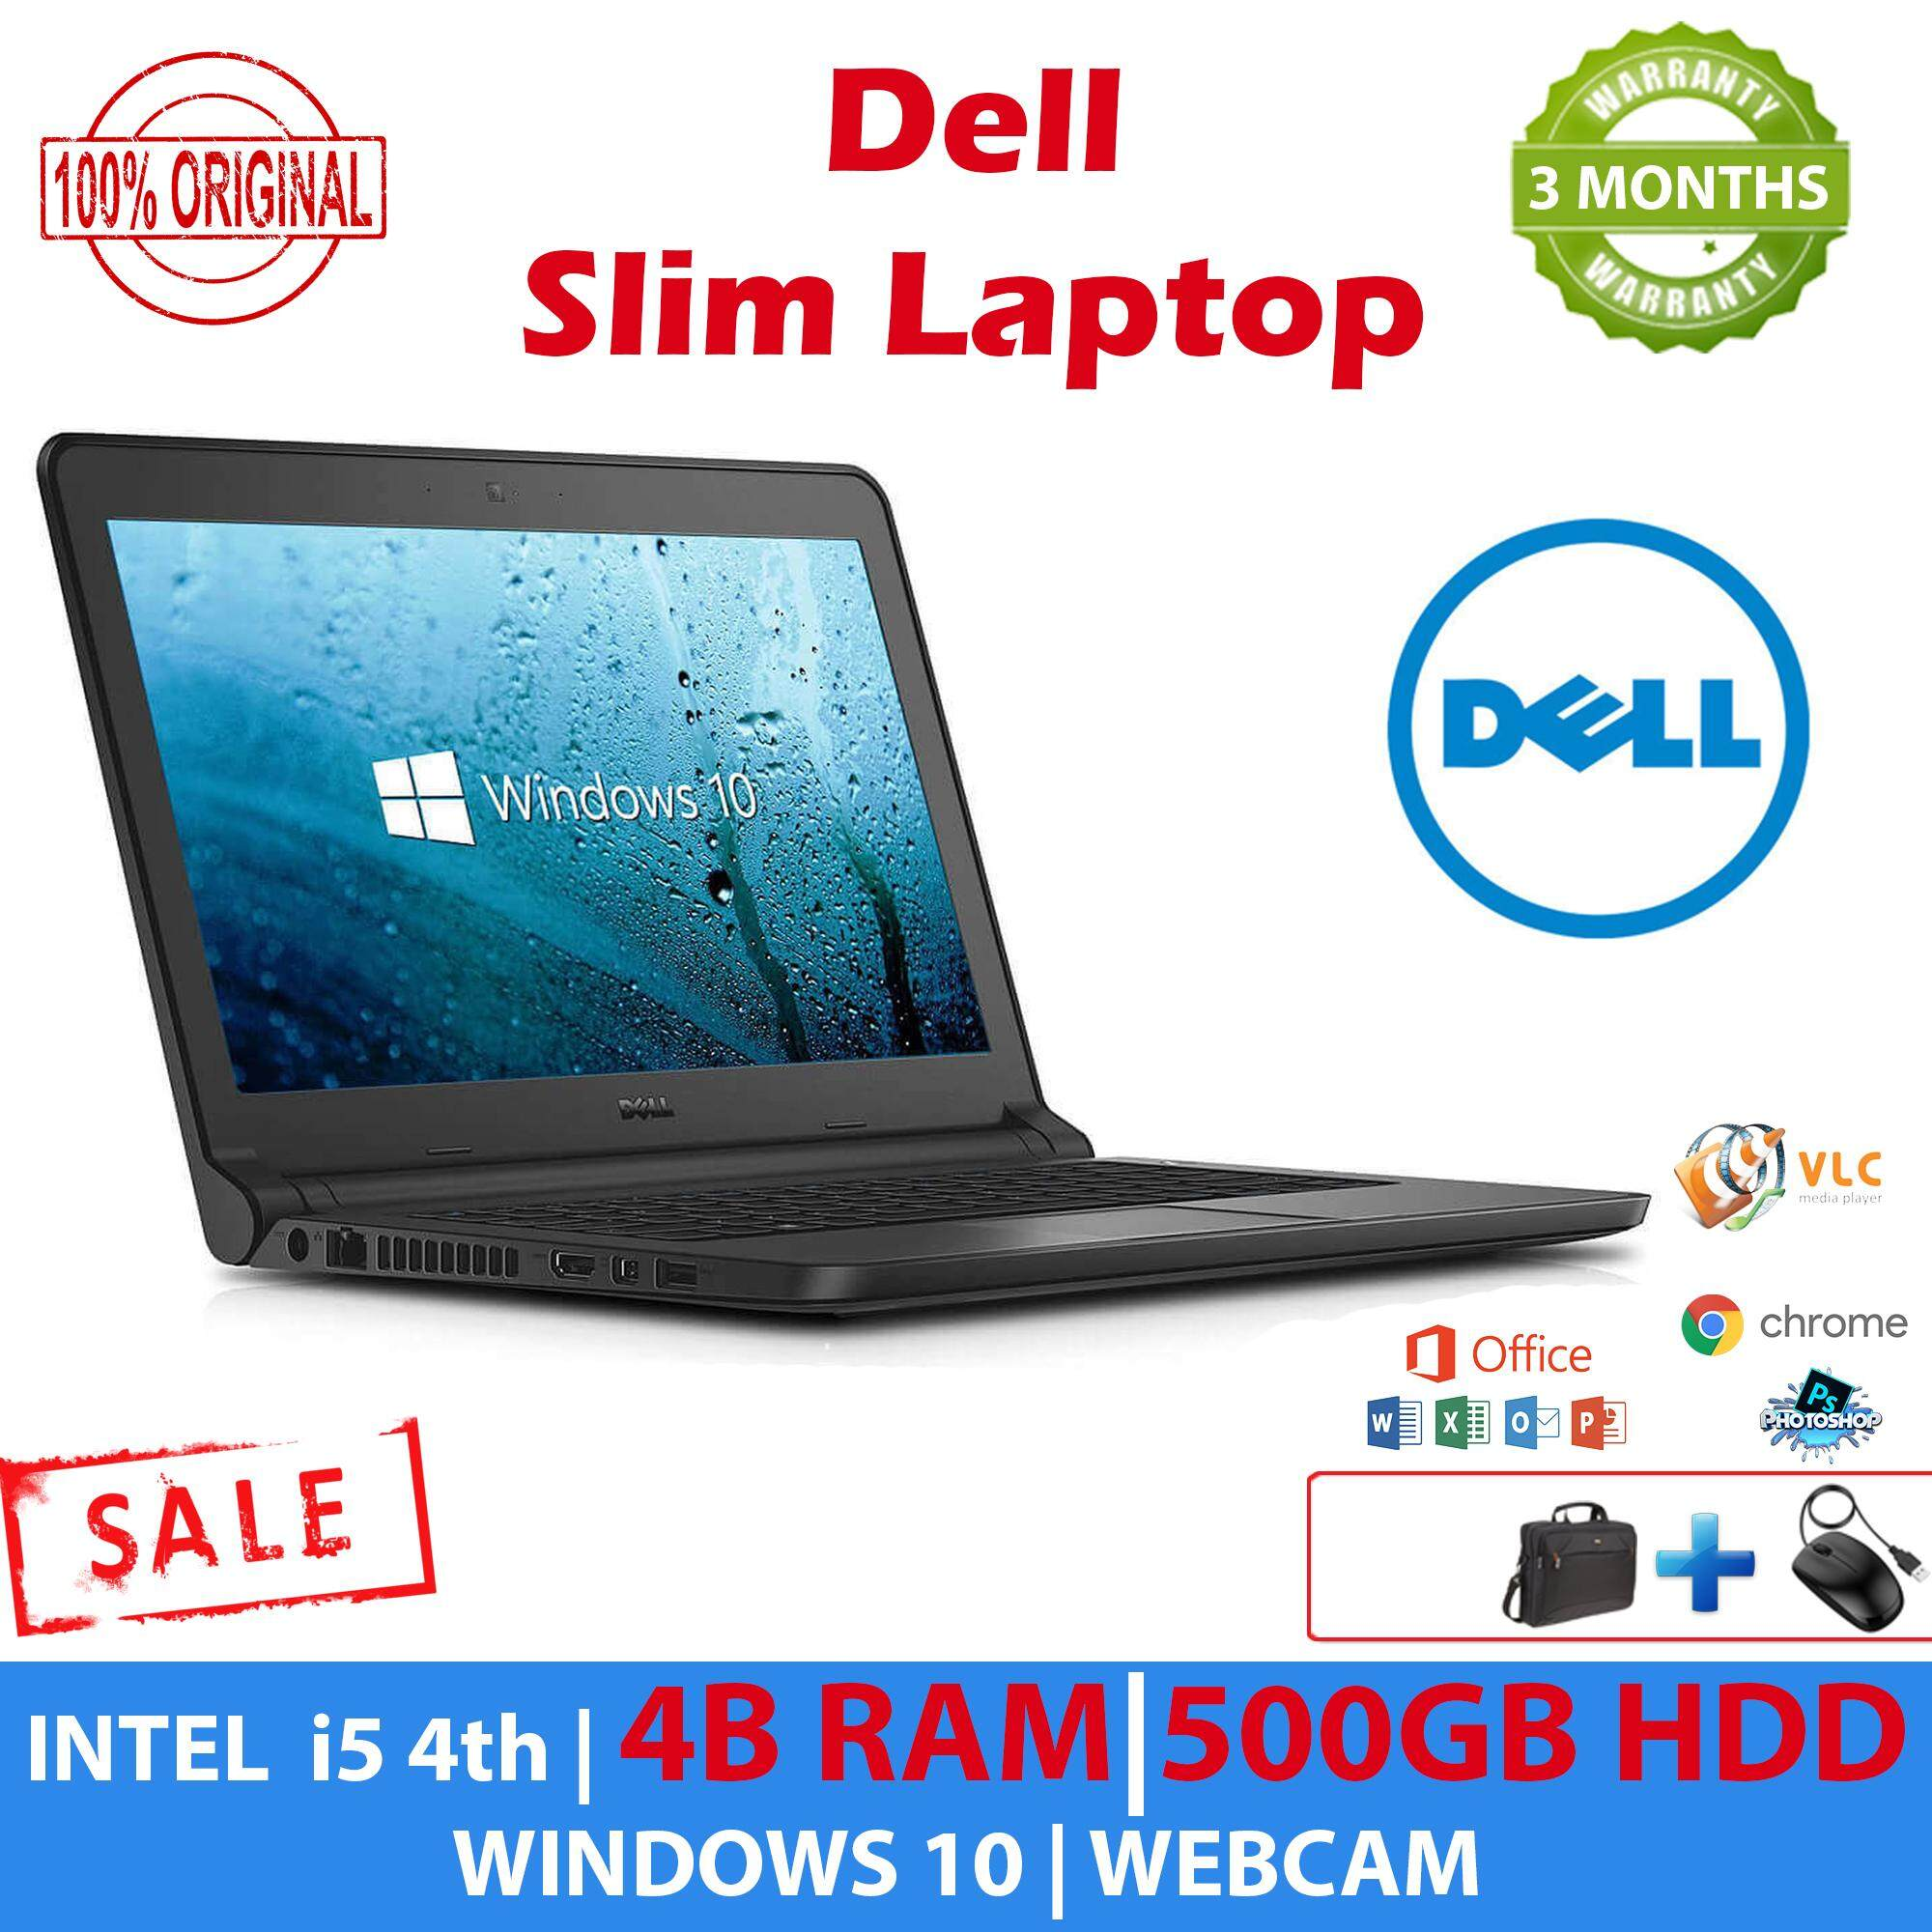 Dell Slim Laptop - Latitude 3340 - i5 4th Gen - 4GB RAM - 500GB HDD - WebCam - WiFi - 3 Months Warranty - 100% Original Malaysia